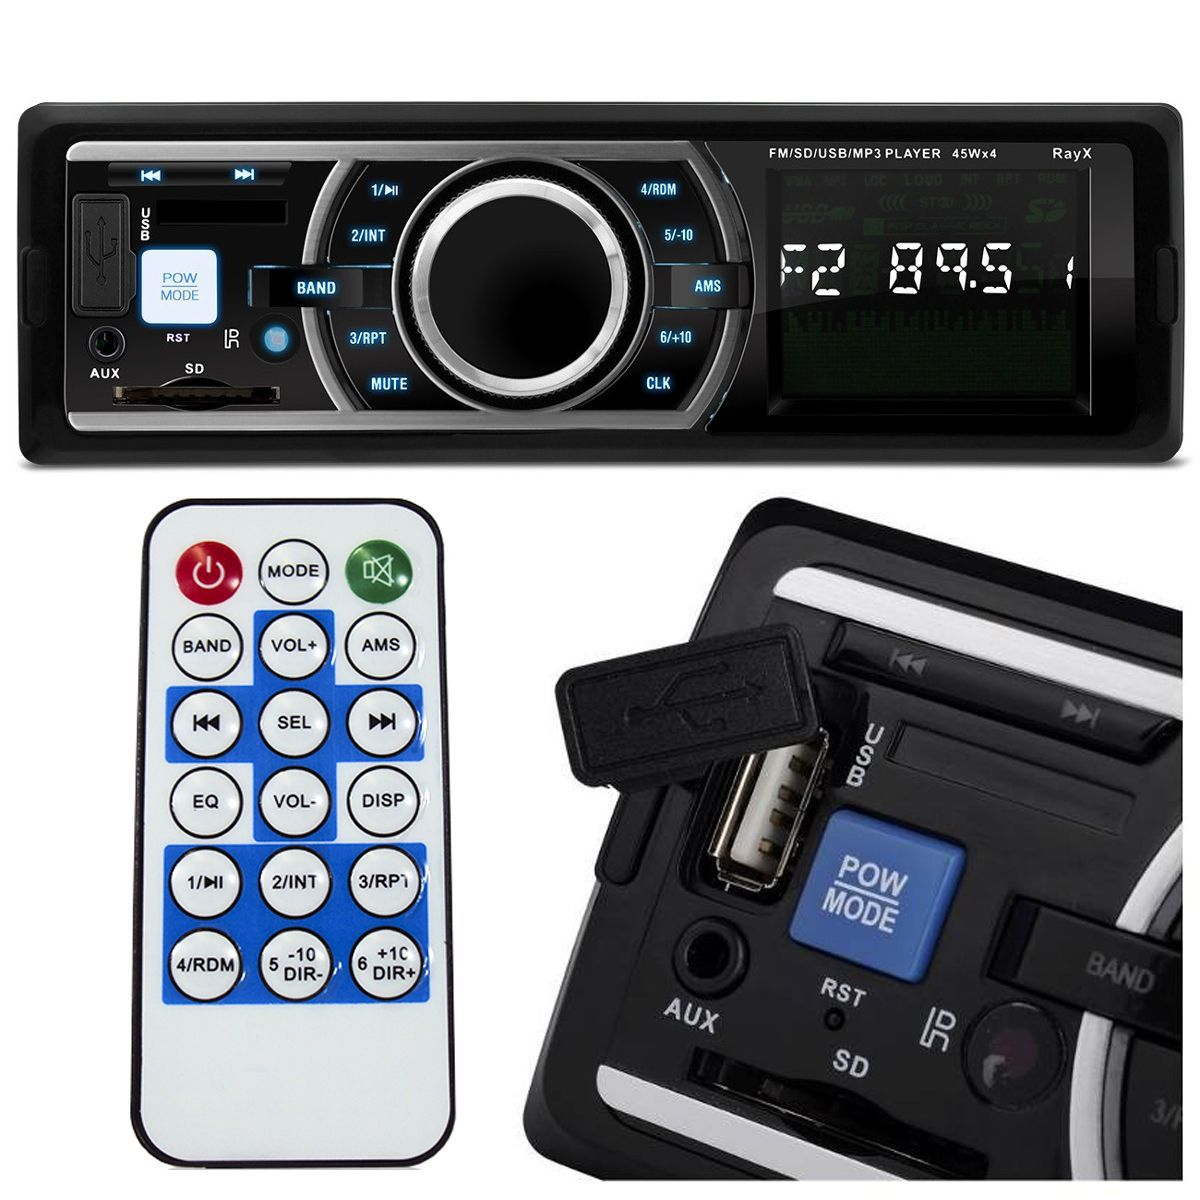 Rádio Mp3 Player Automotivo Usb e Sd com Controle Remoto 6203